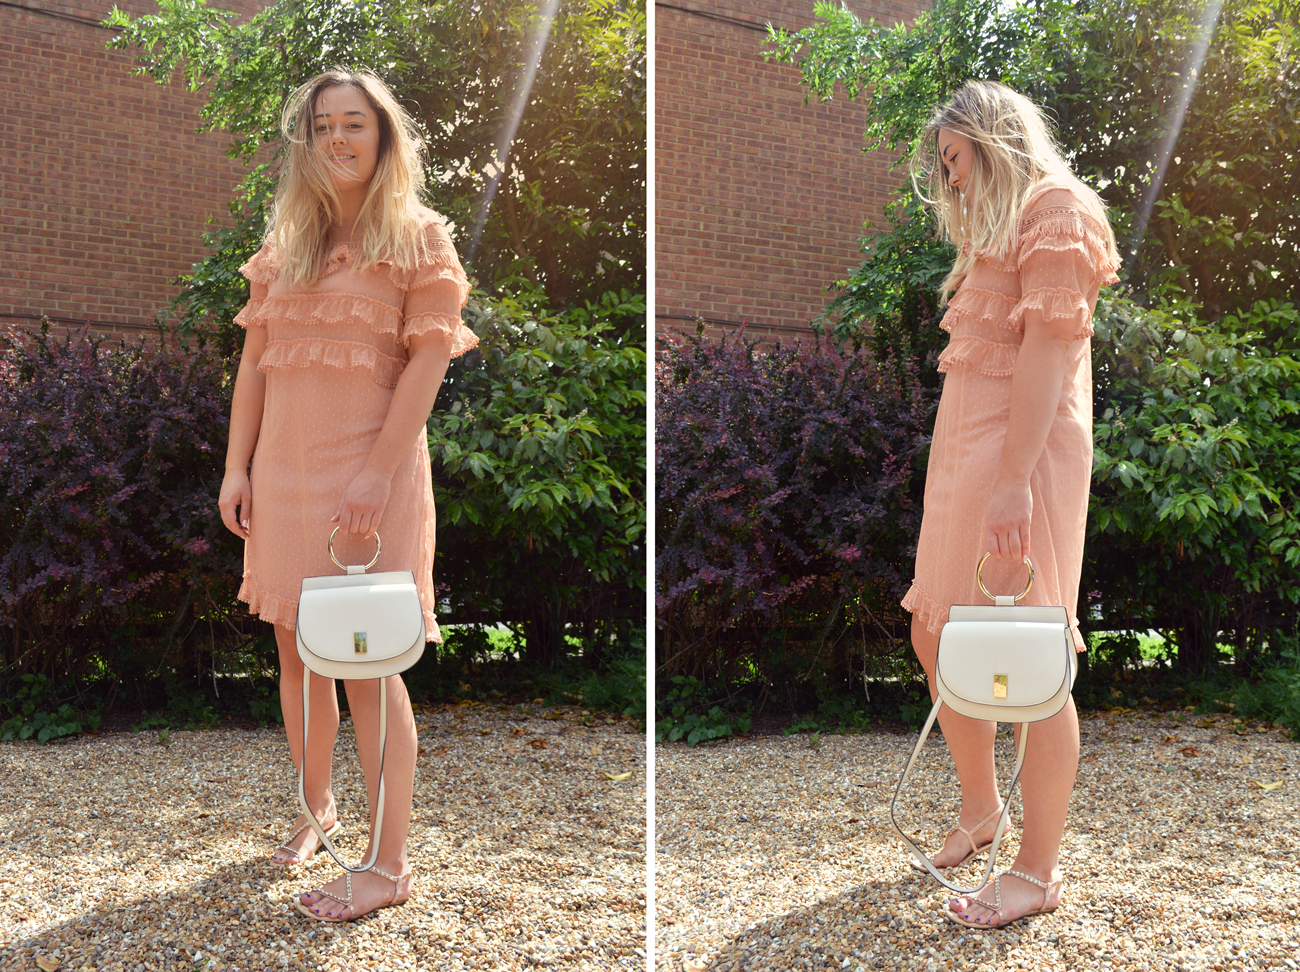 Hannah Gladwin wearing Asos River Island blush pink dobby dress with tiered chiffon and lace, holding the Mango bag